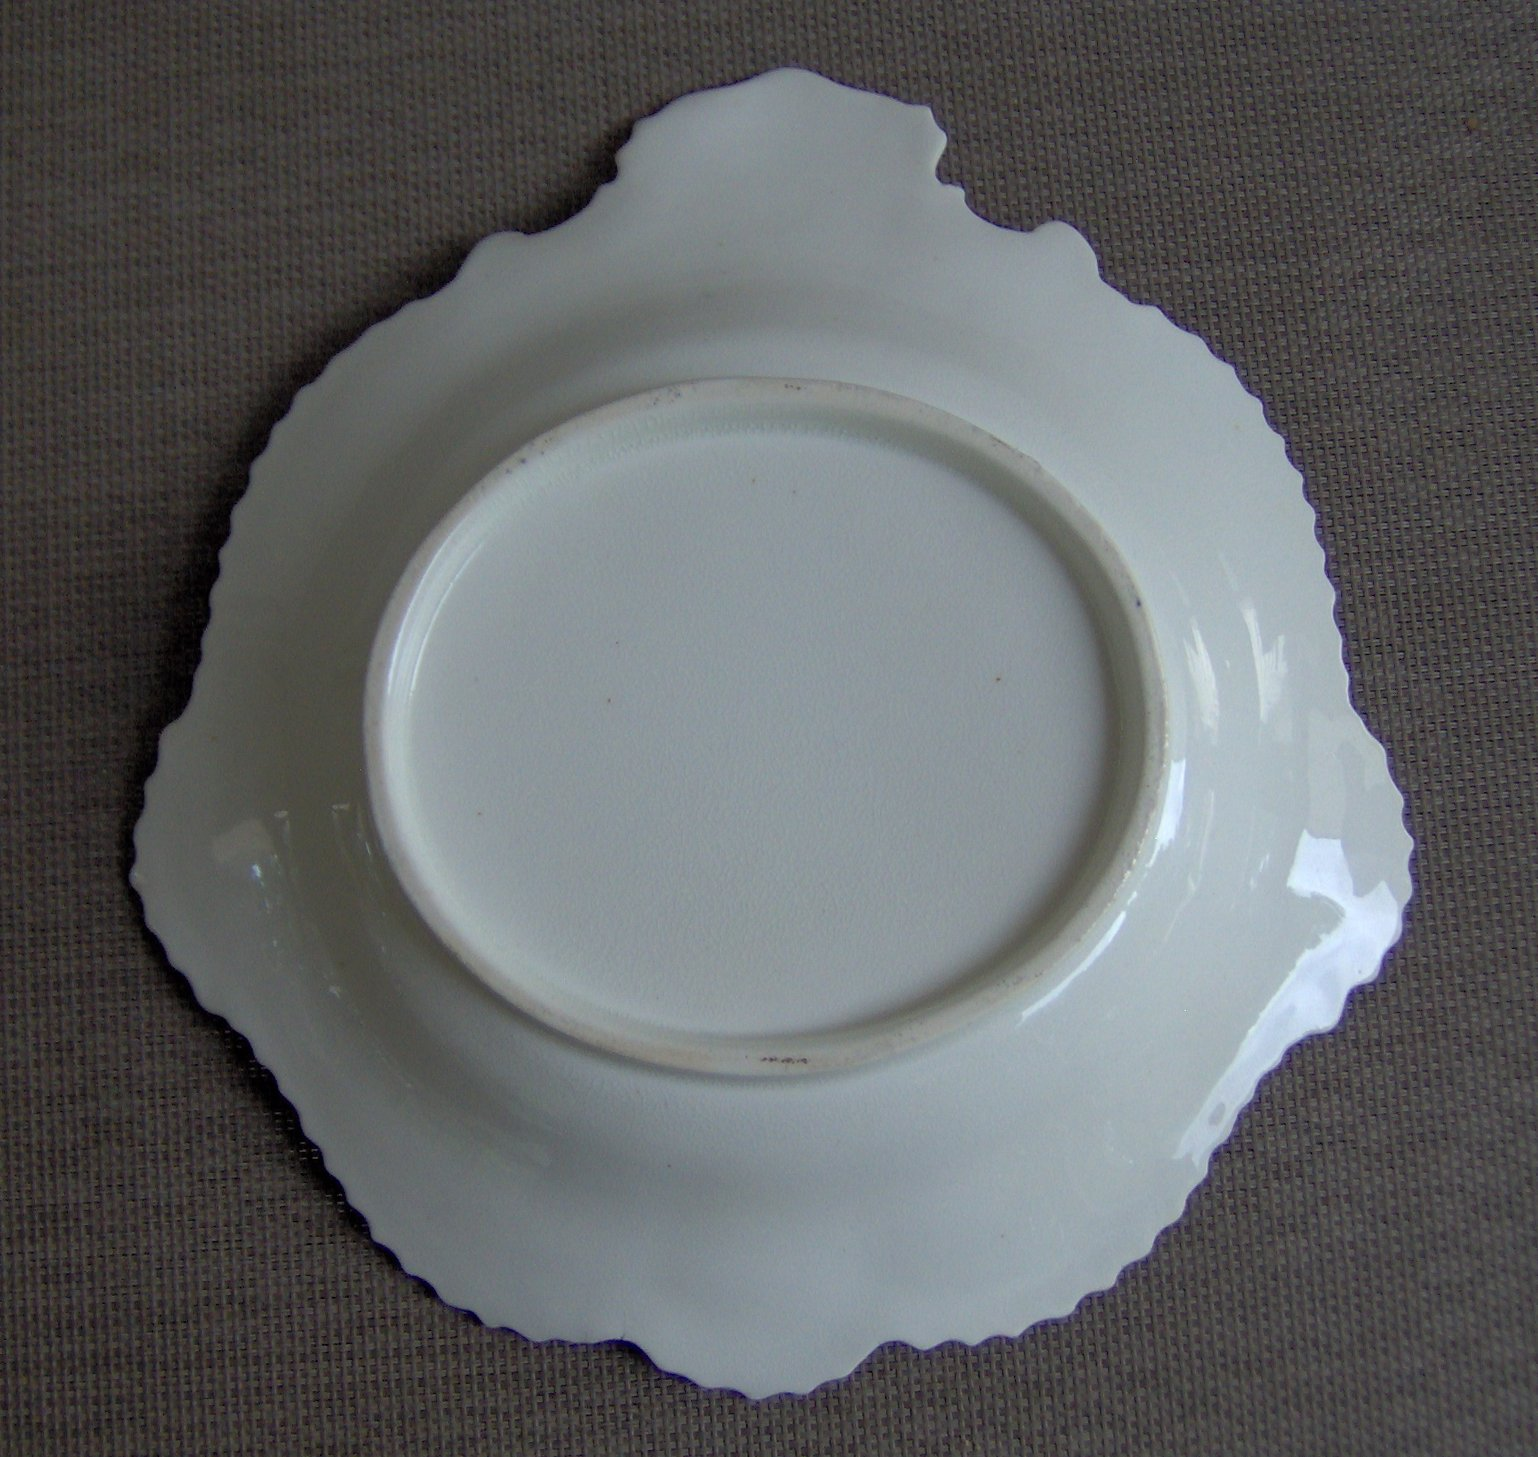 Twelve Improved Ironstone China Dinner Plates by Charles Meigh